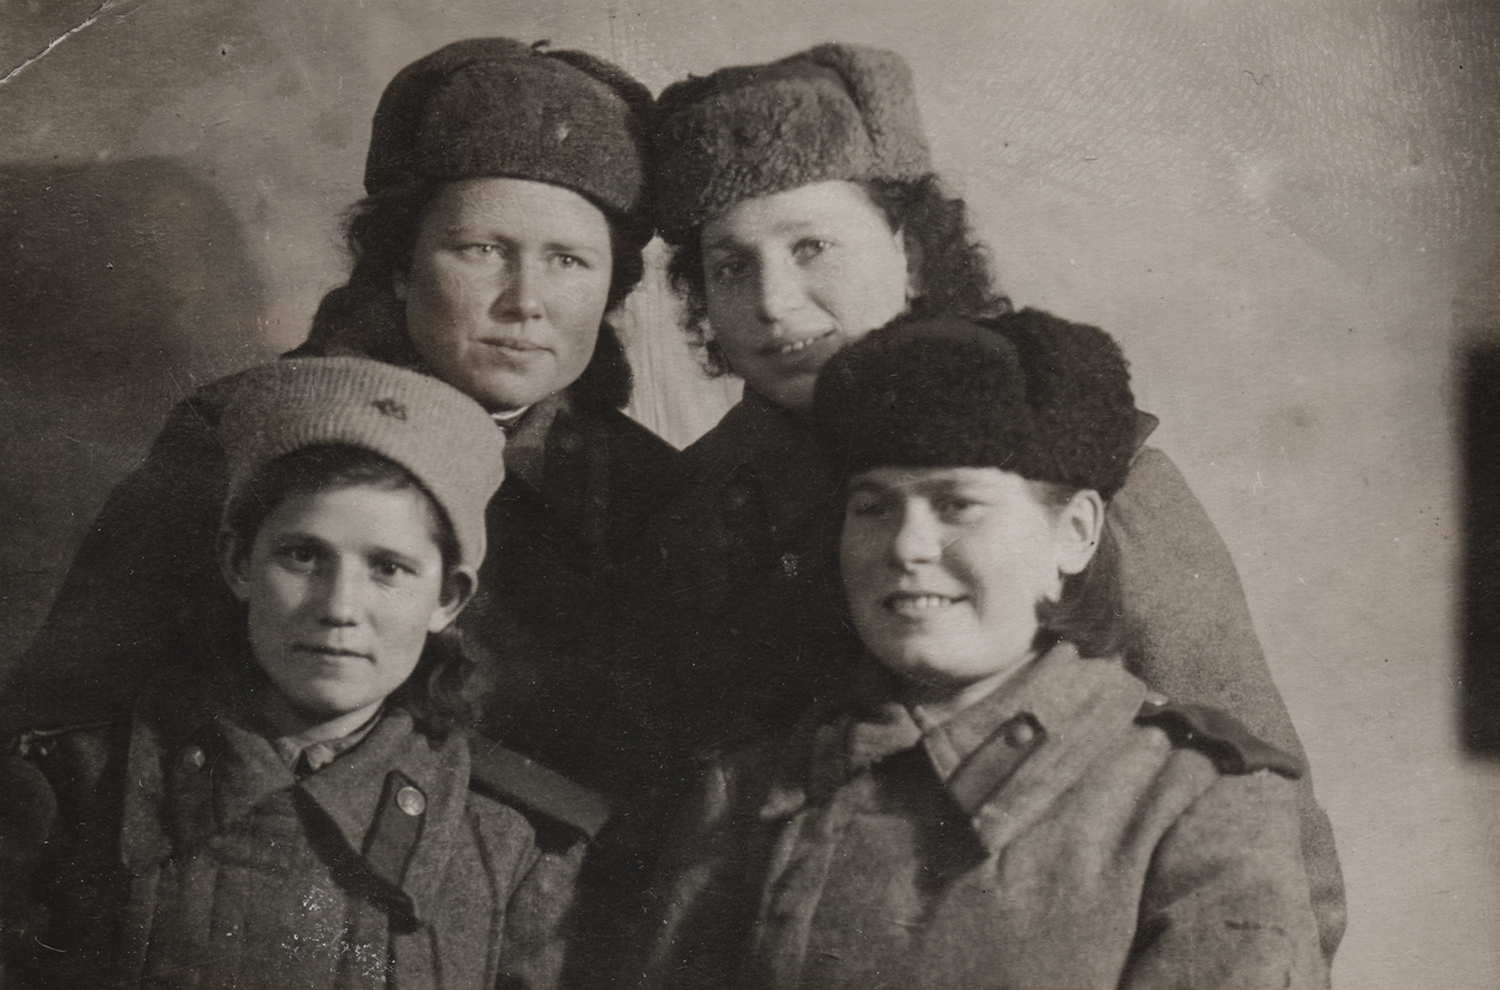 """Raisa Brook, top right, sent photo to her parents from the front. On the back: """"… combat friends. If the enemy comes at us, we'll greet him with shrapnel. January 15, 1944."""